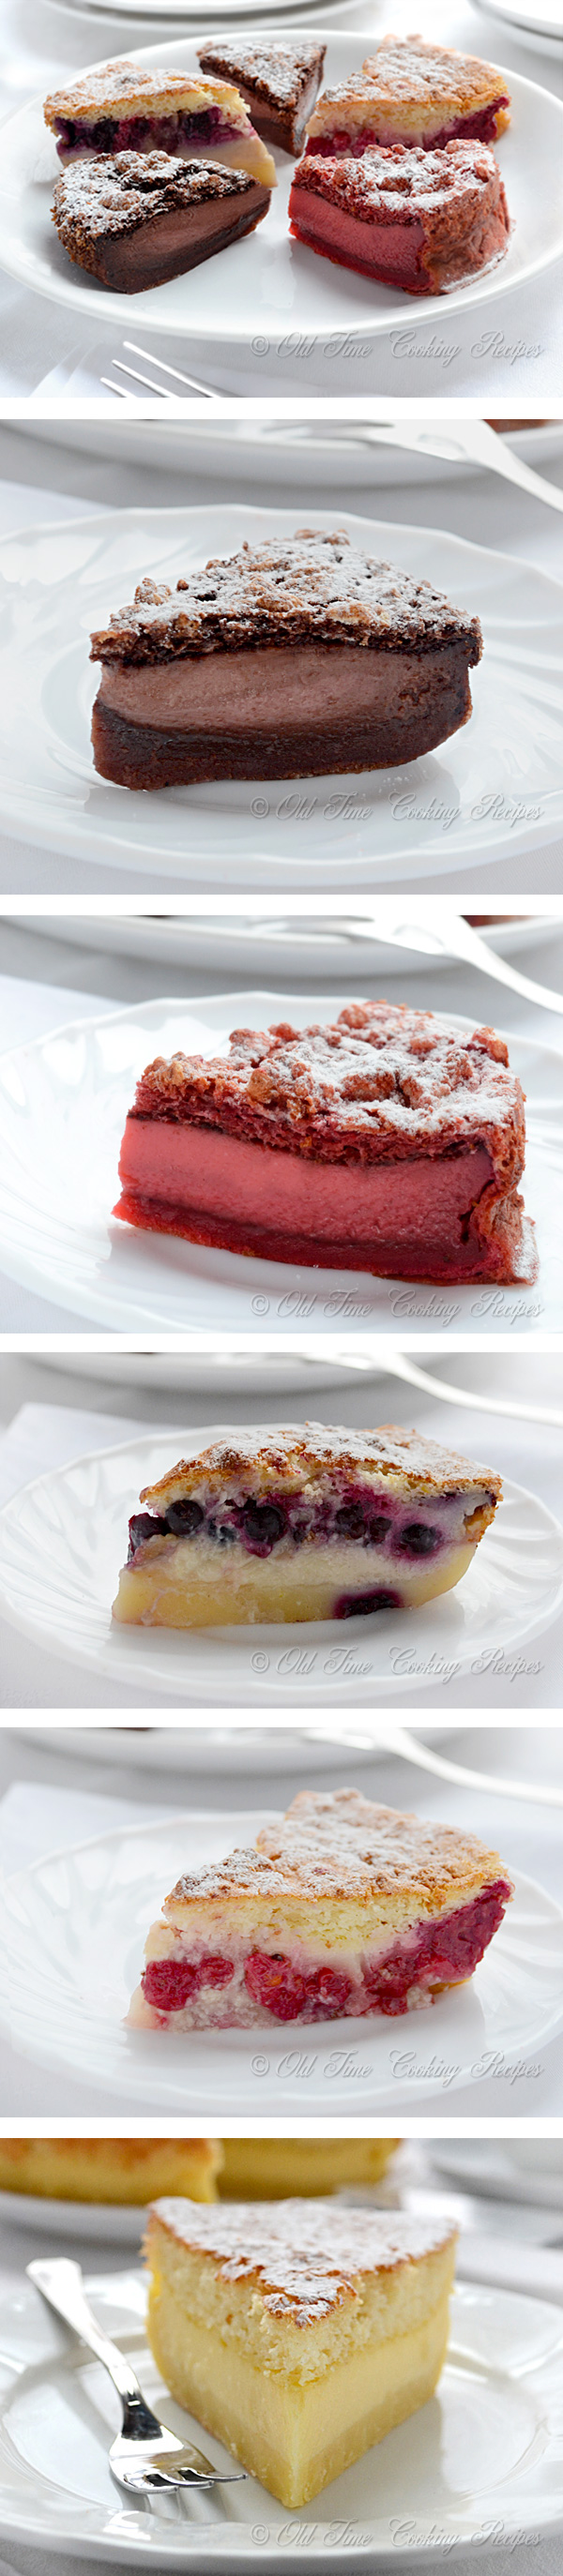 Magic Cake, Part II - Chocolate, Red Velvet, Fruit